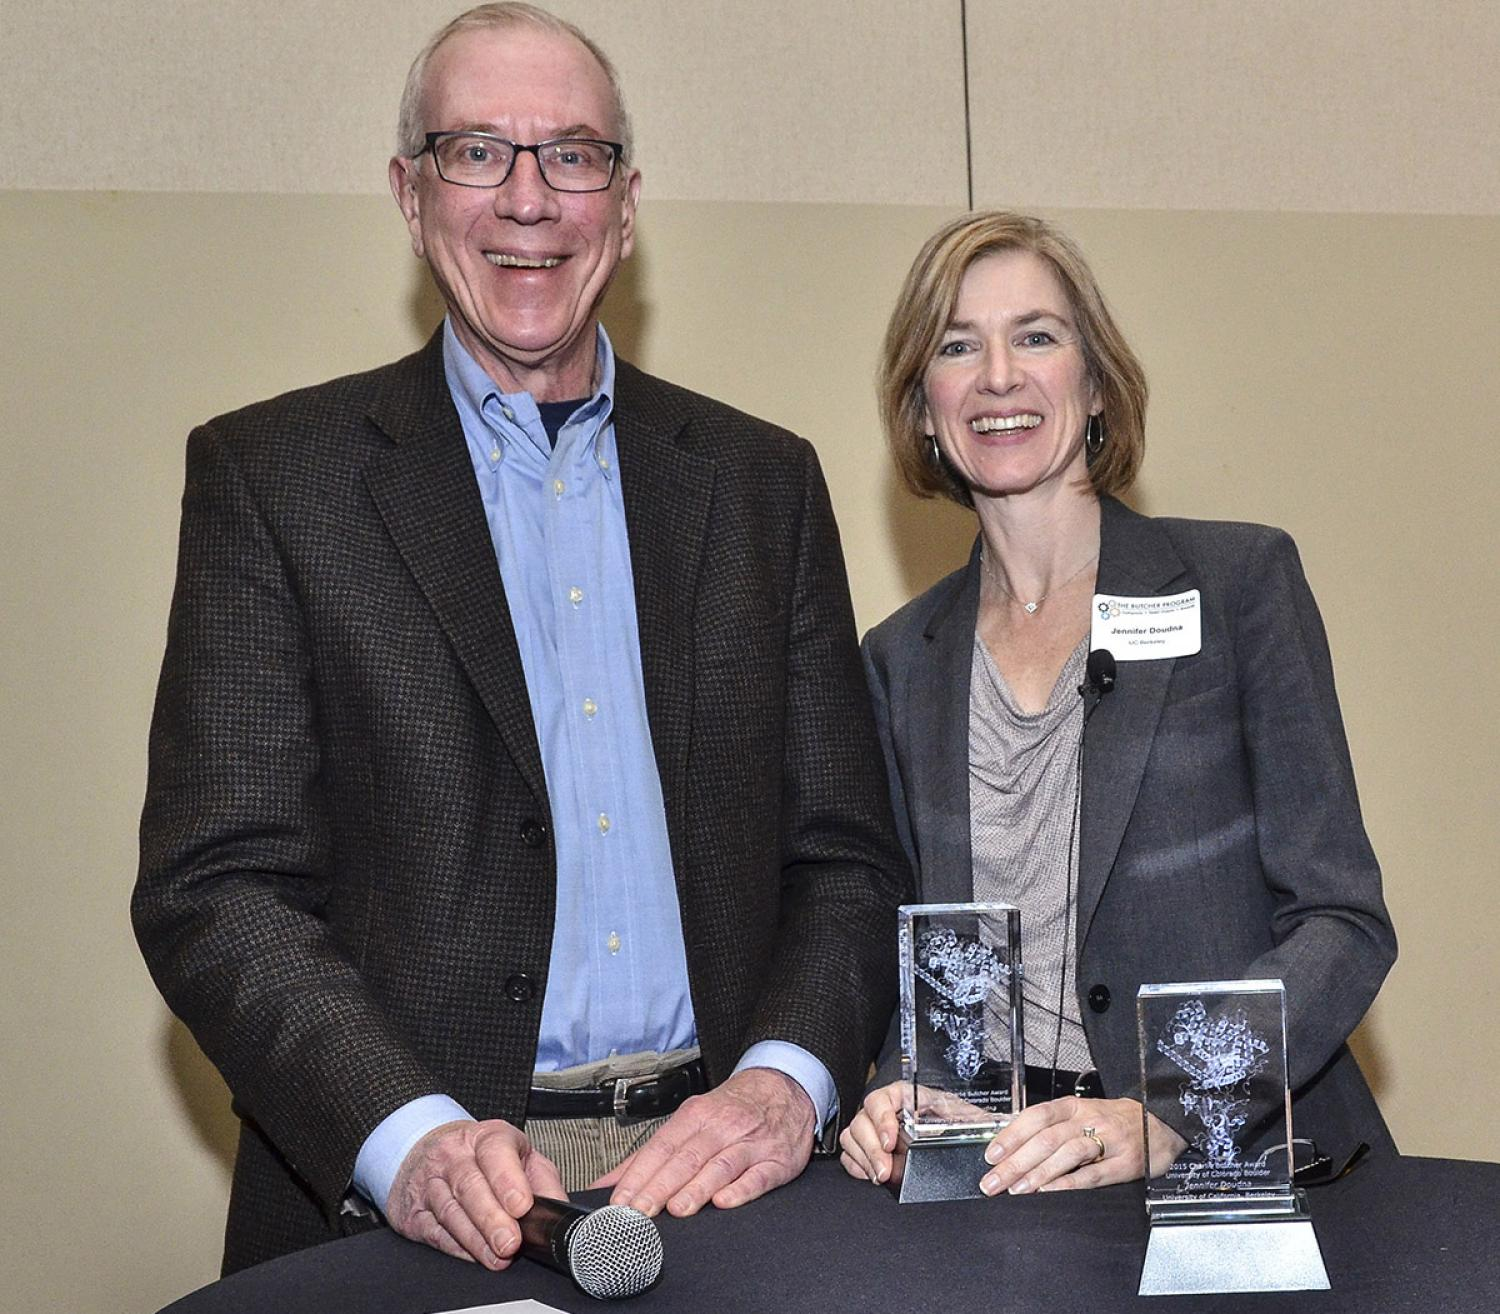 Jennifer Doudna and Tom Cech in 2015